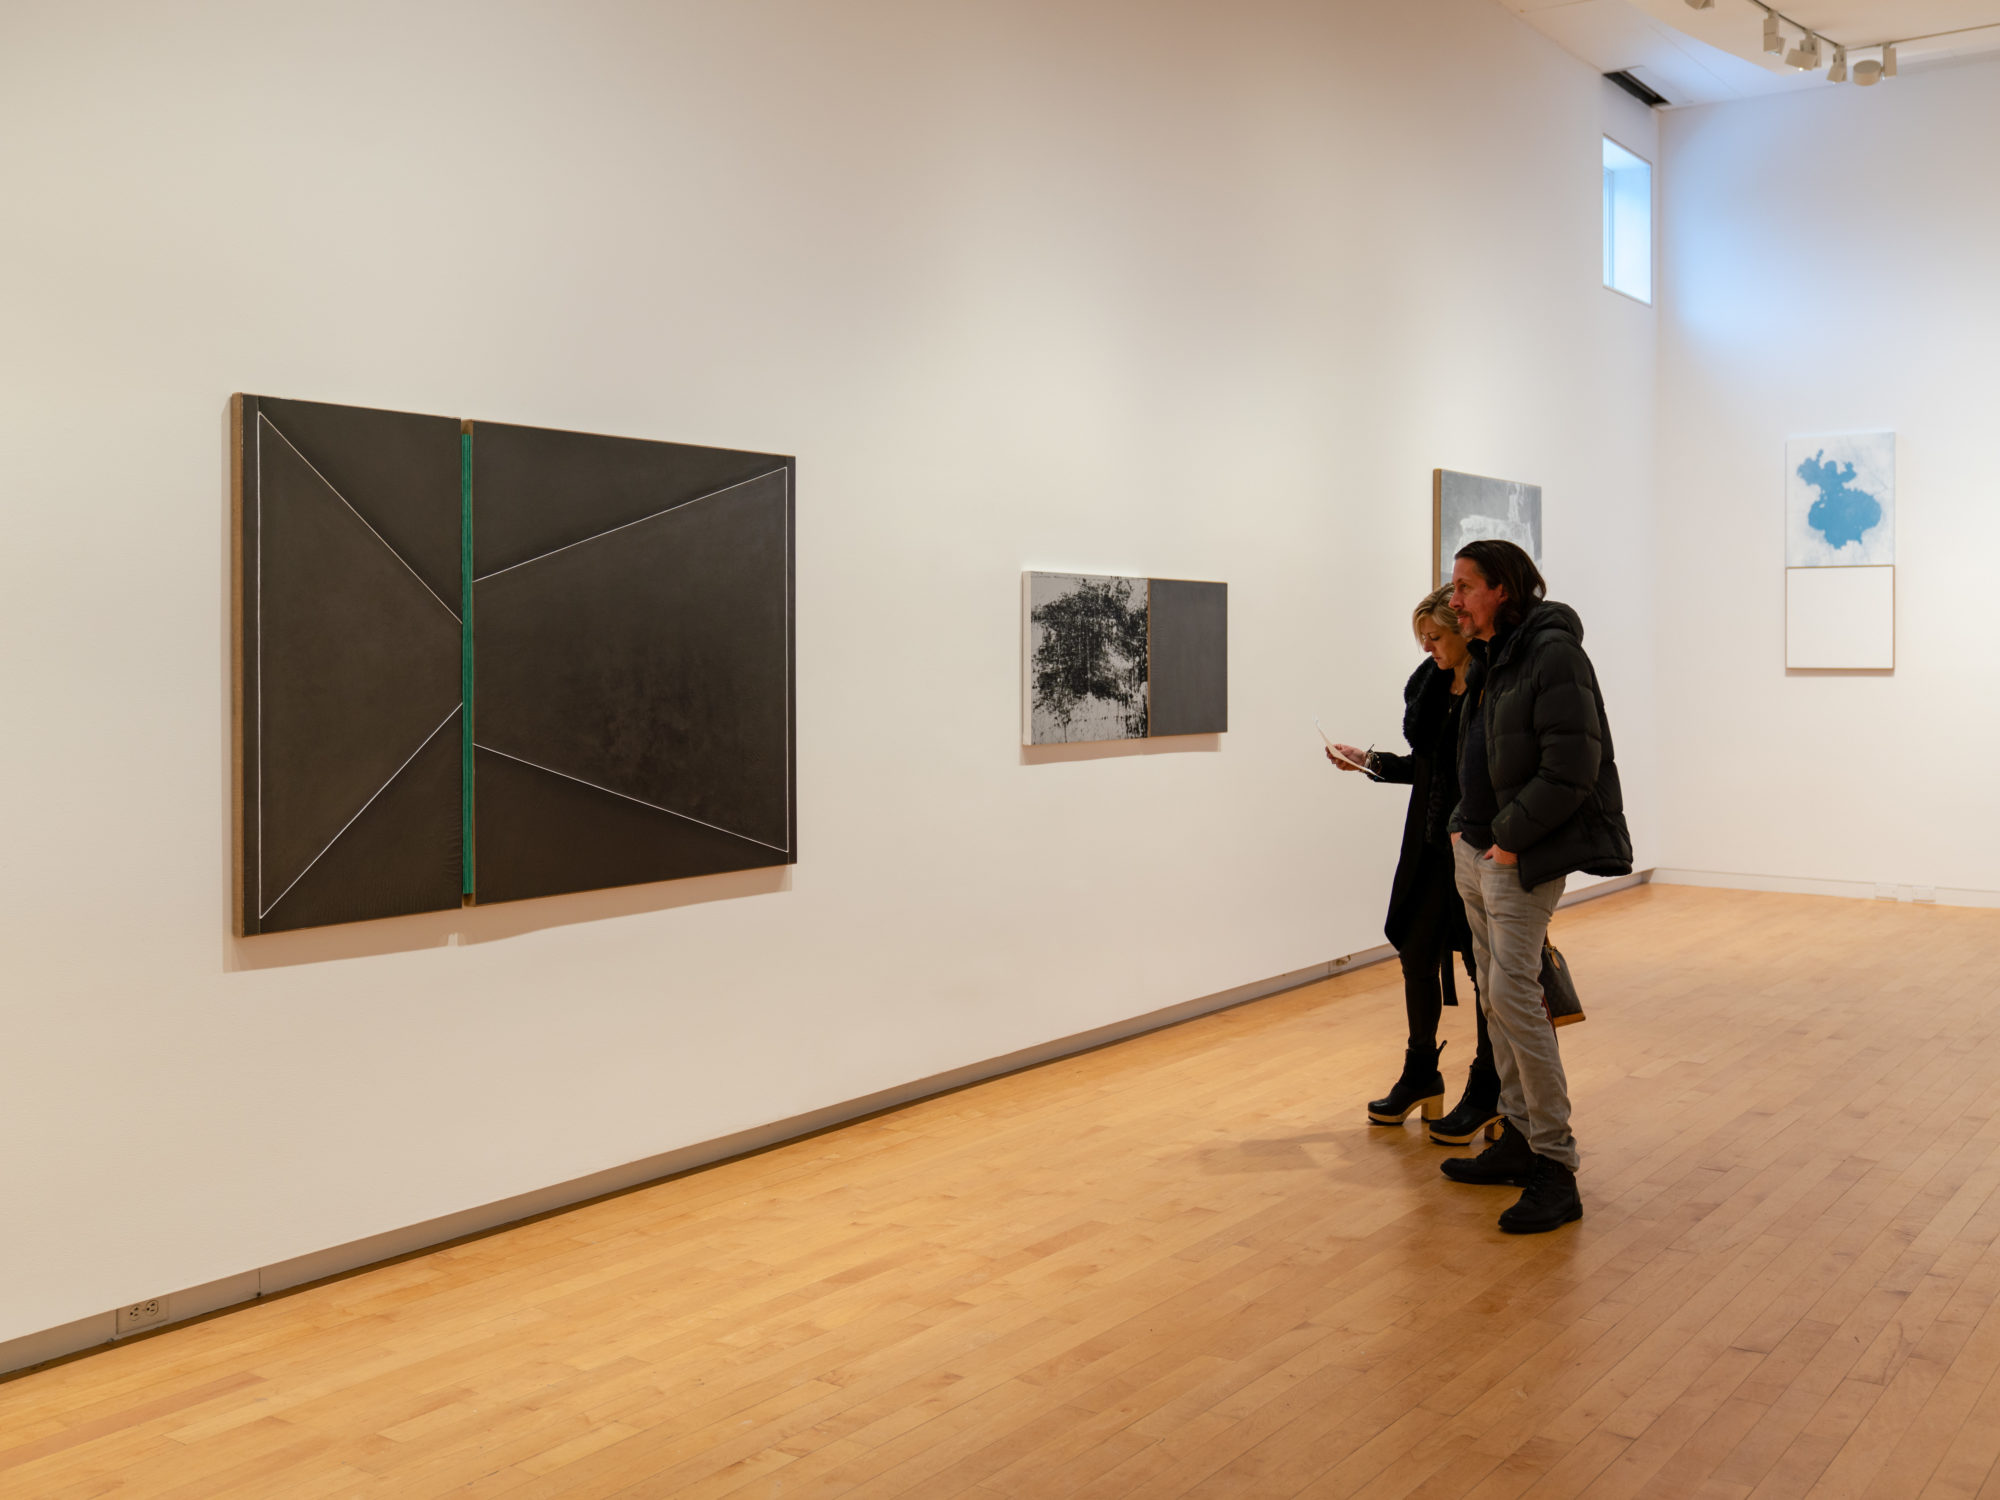 Visitors in front of paintings by N. Dash.